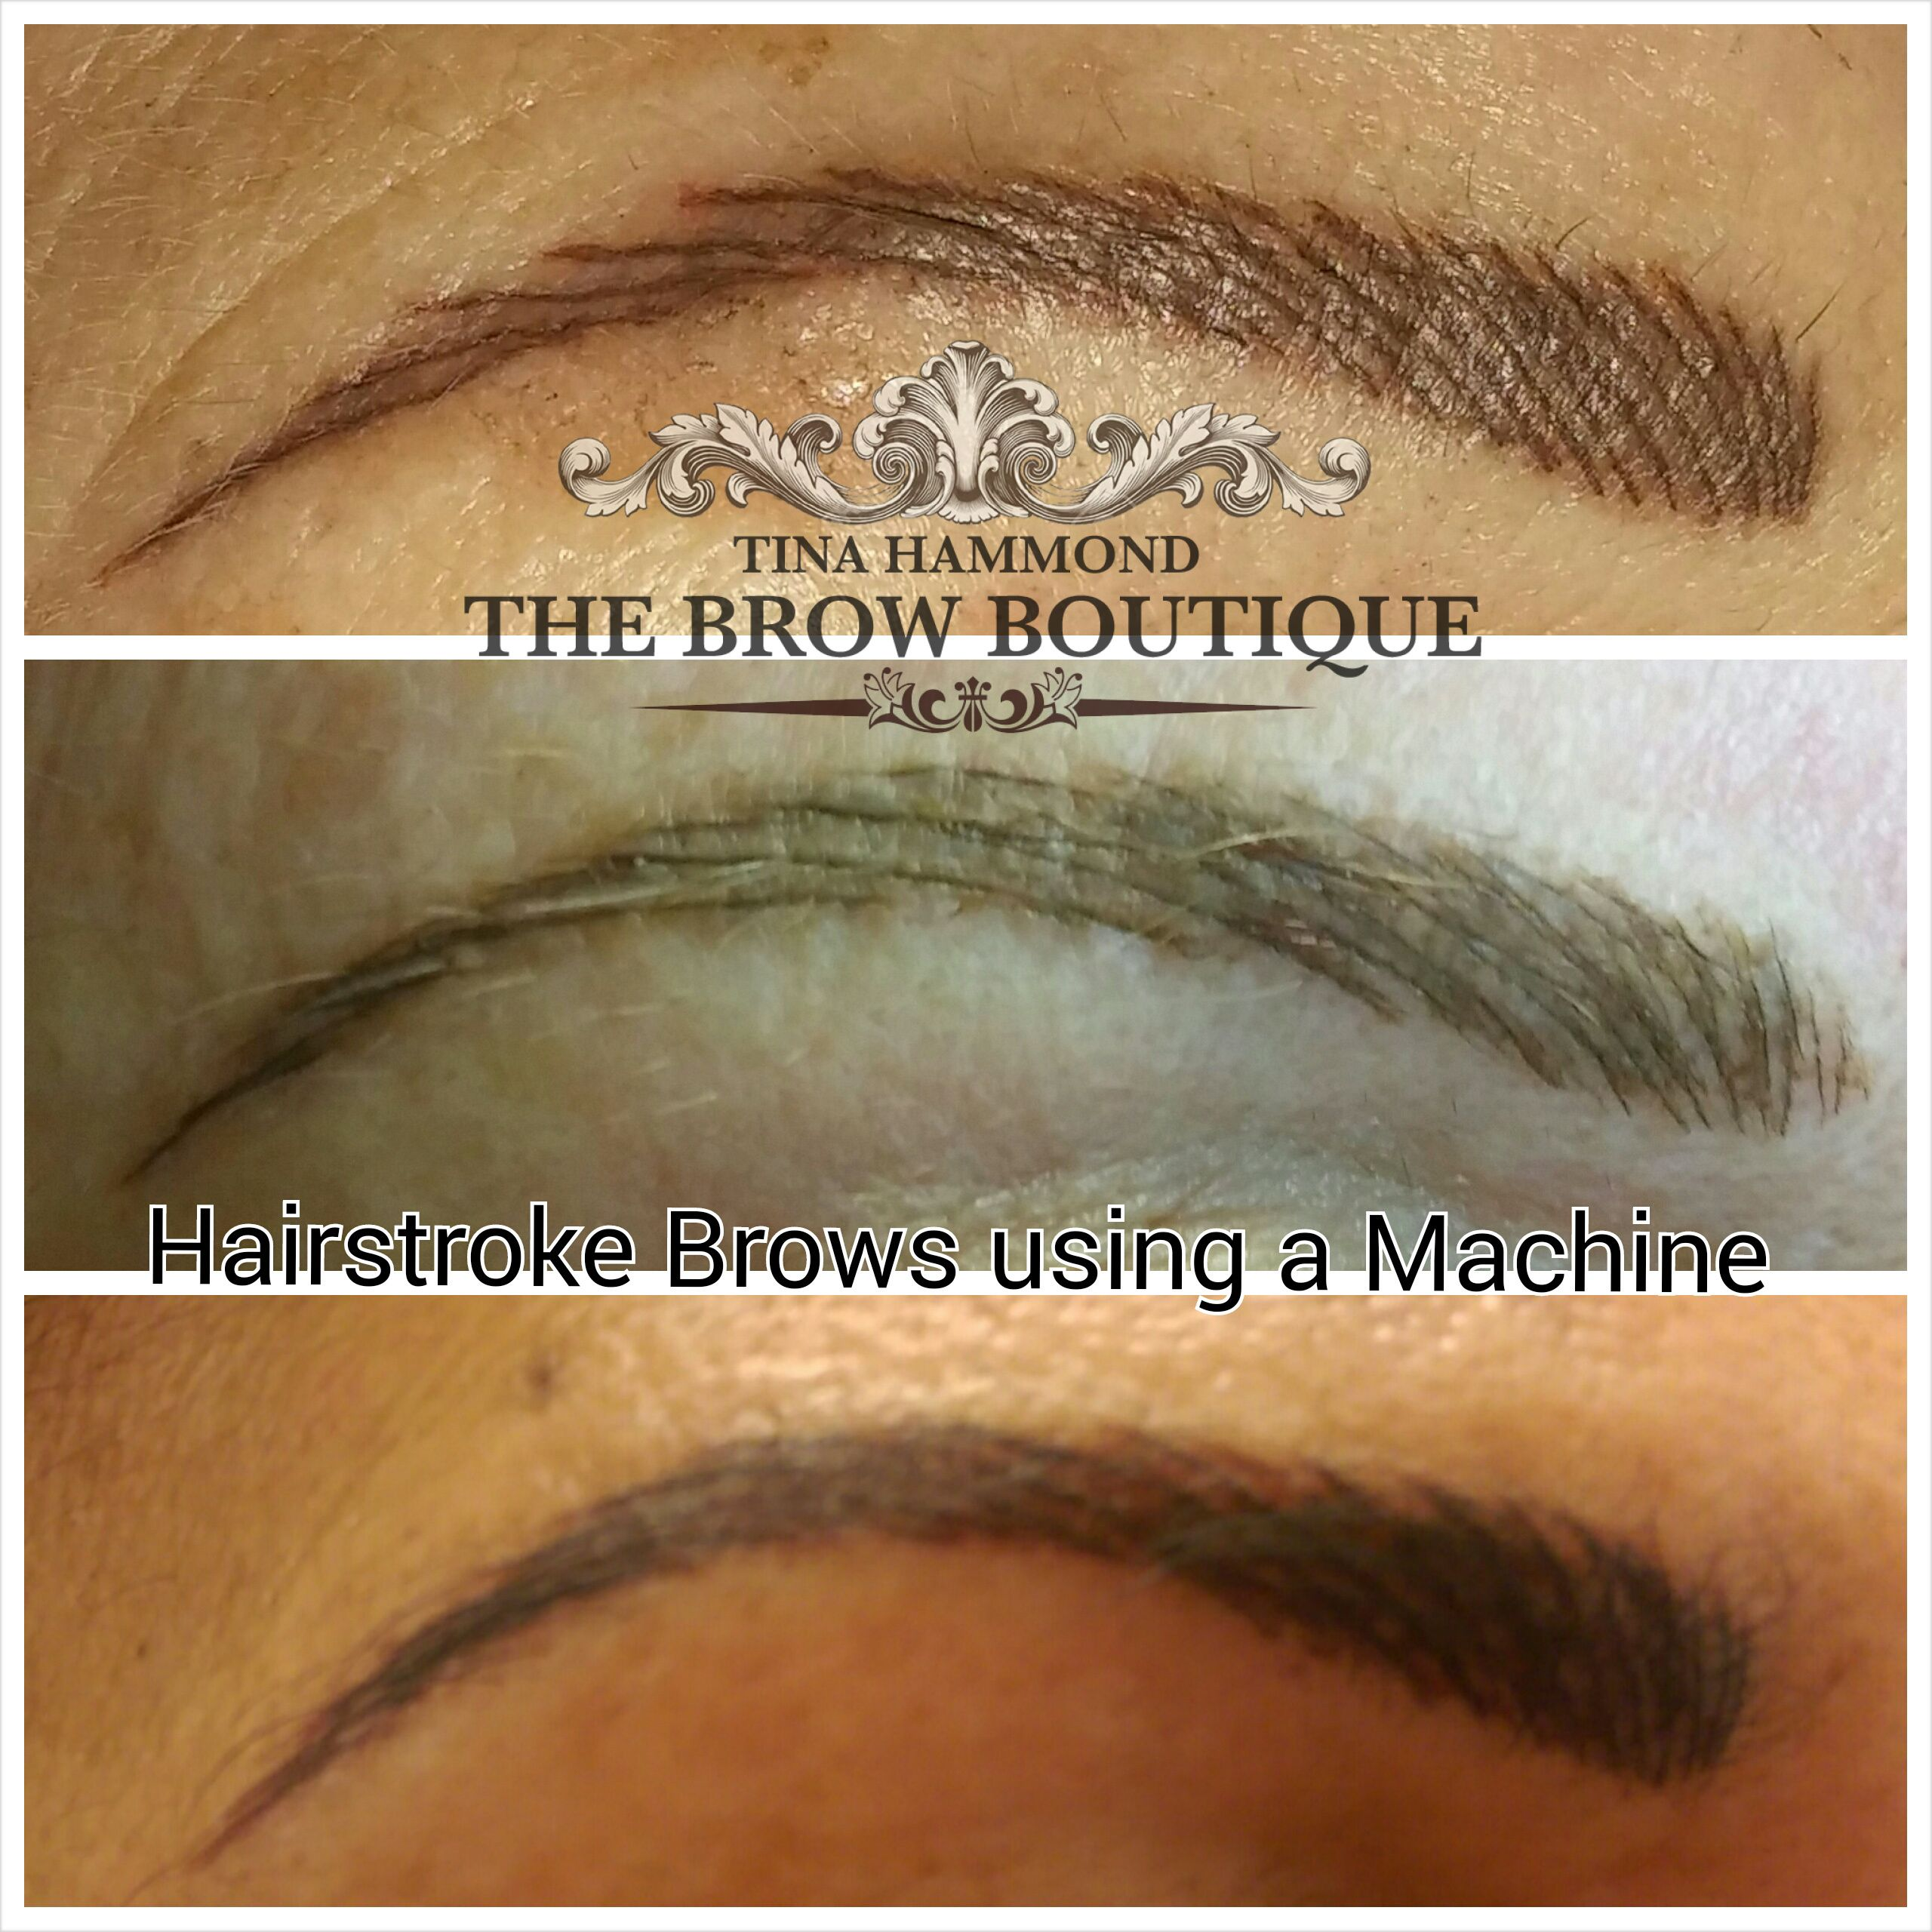 Hair stroke technique eyebrows new jersey - Cosmetic Tattoo Brows Hair Stroke Tattoo Brows Hairstroke Brows Using A Machine The